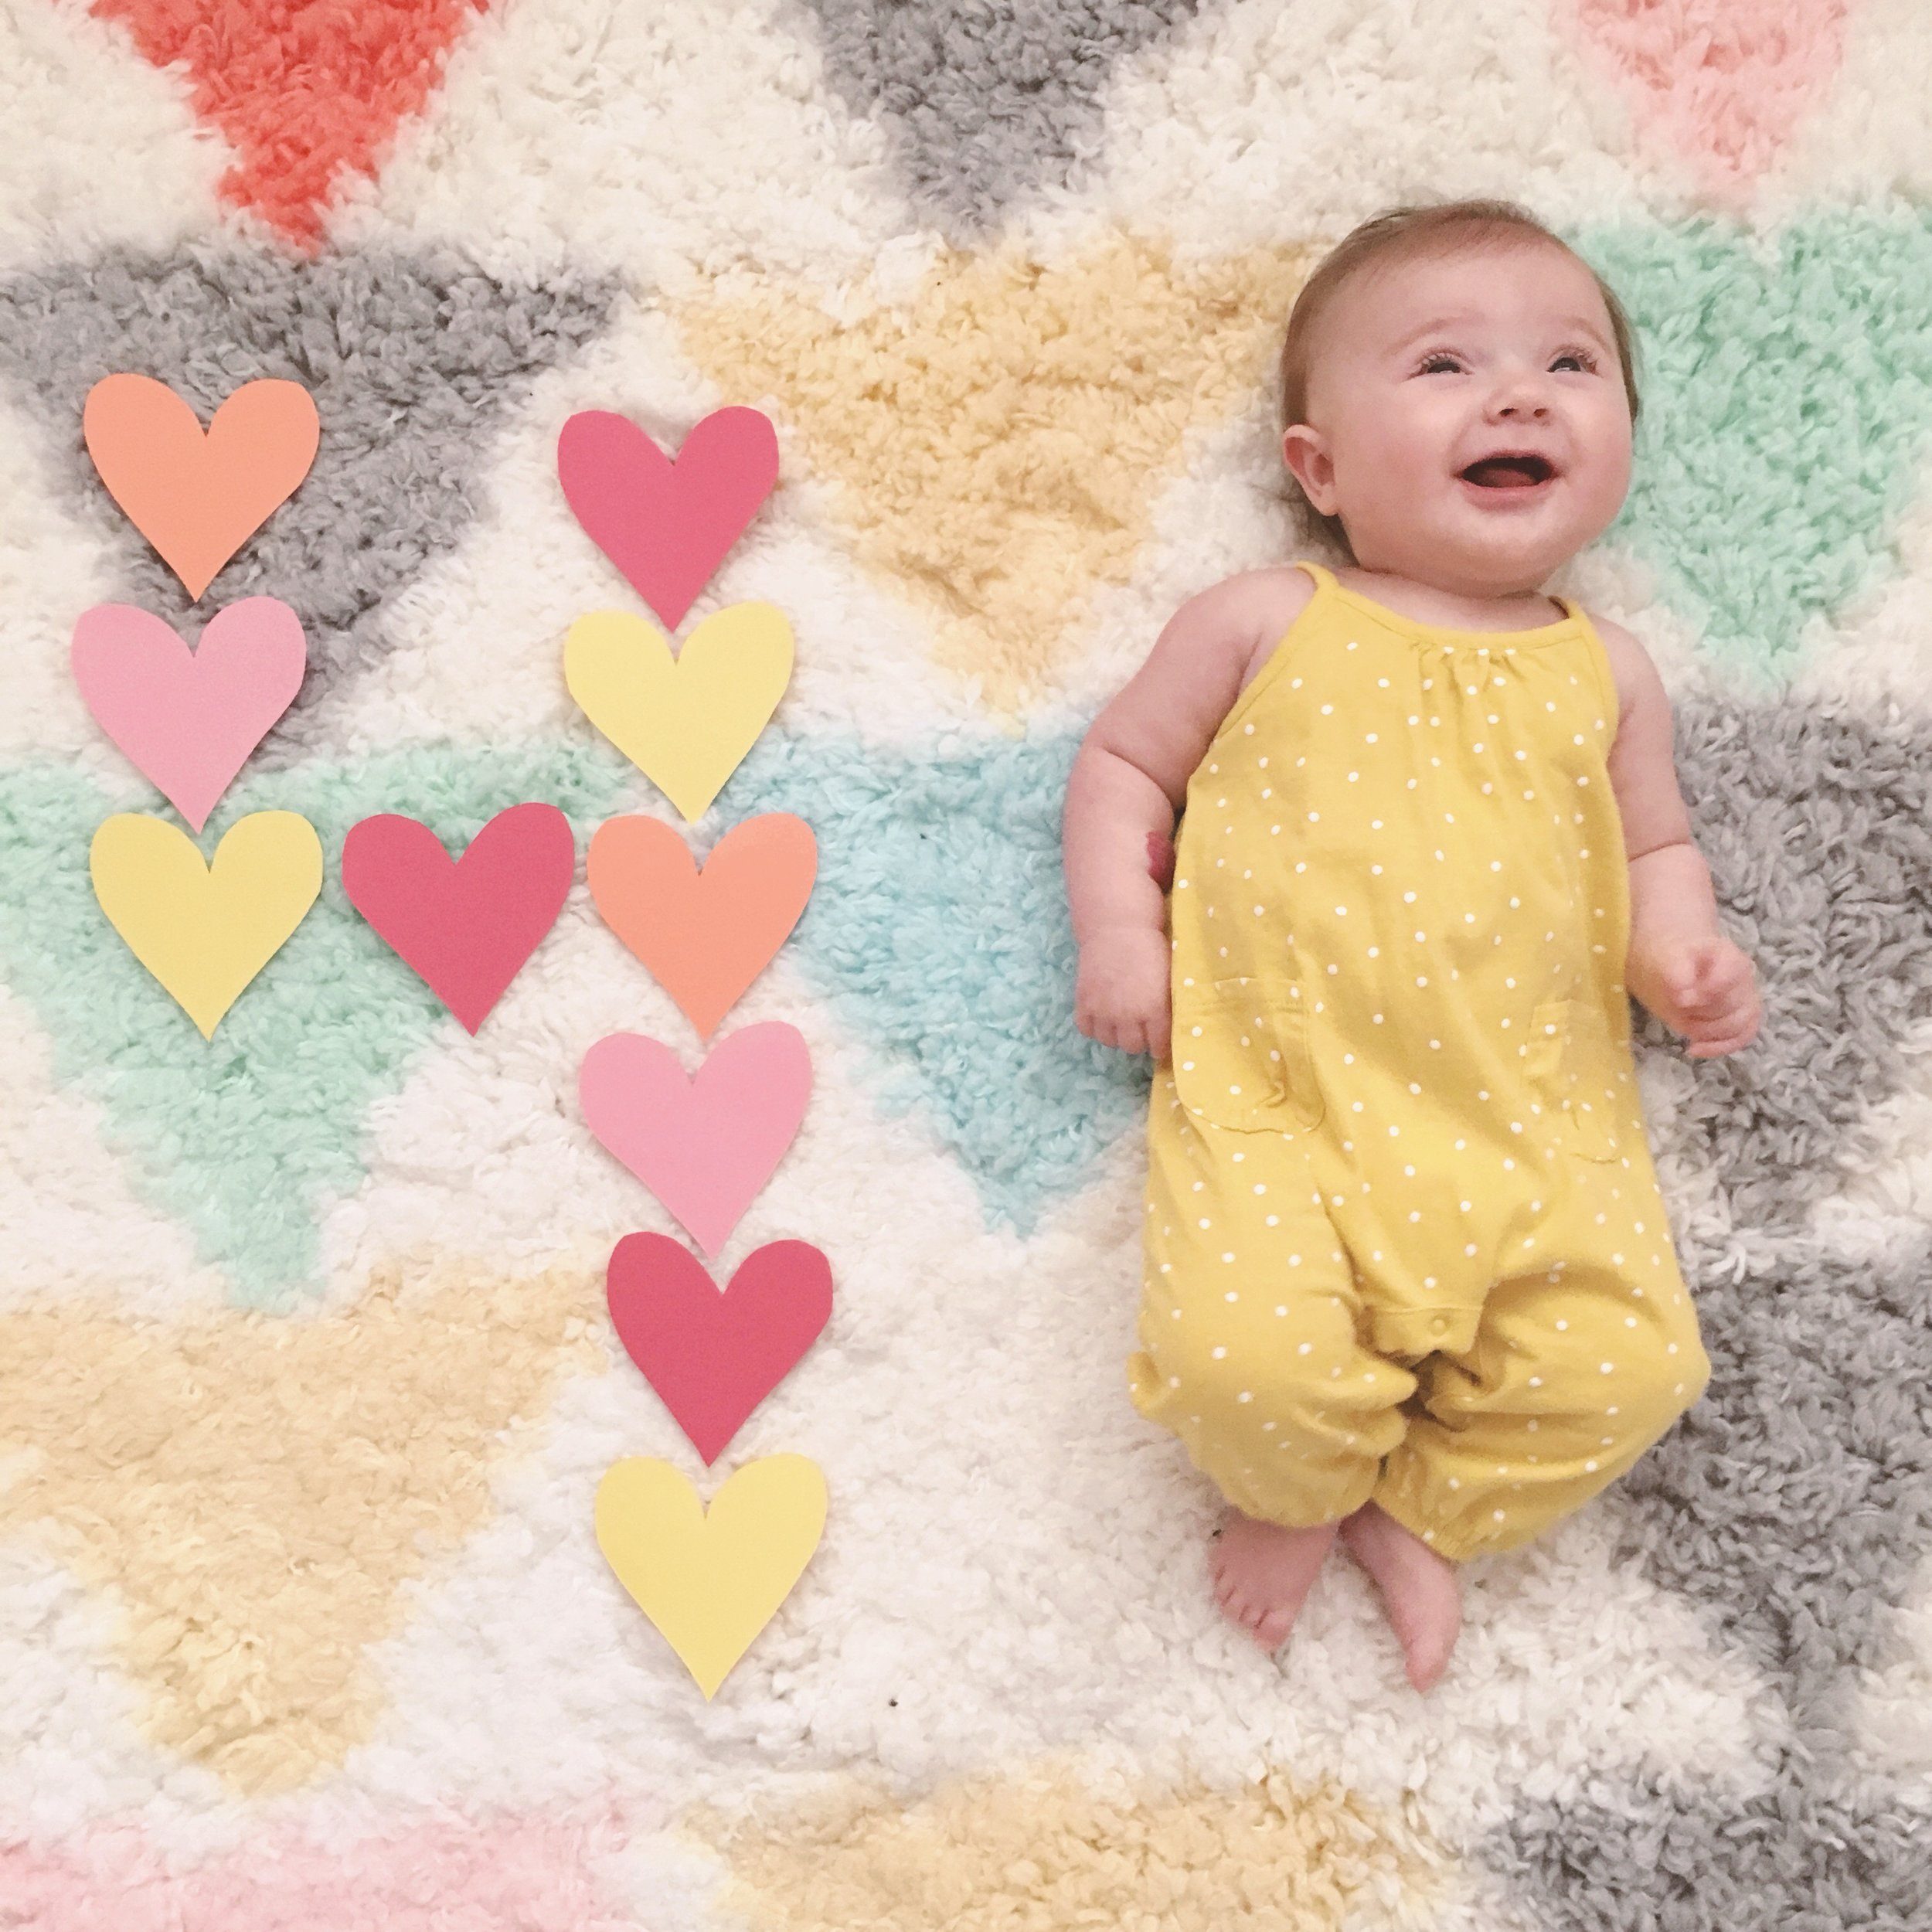 Violet's Four Month Update and Our Summer Plans - wear she blossoms